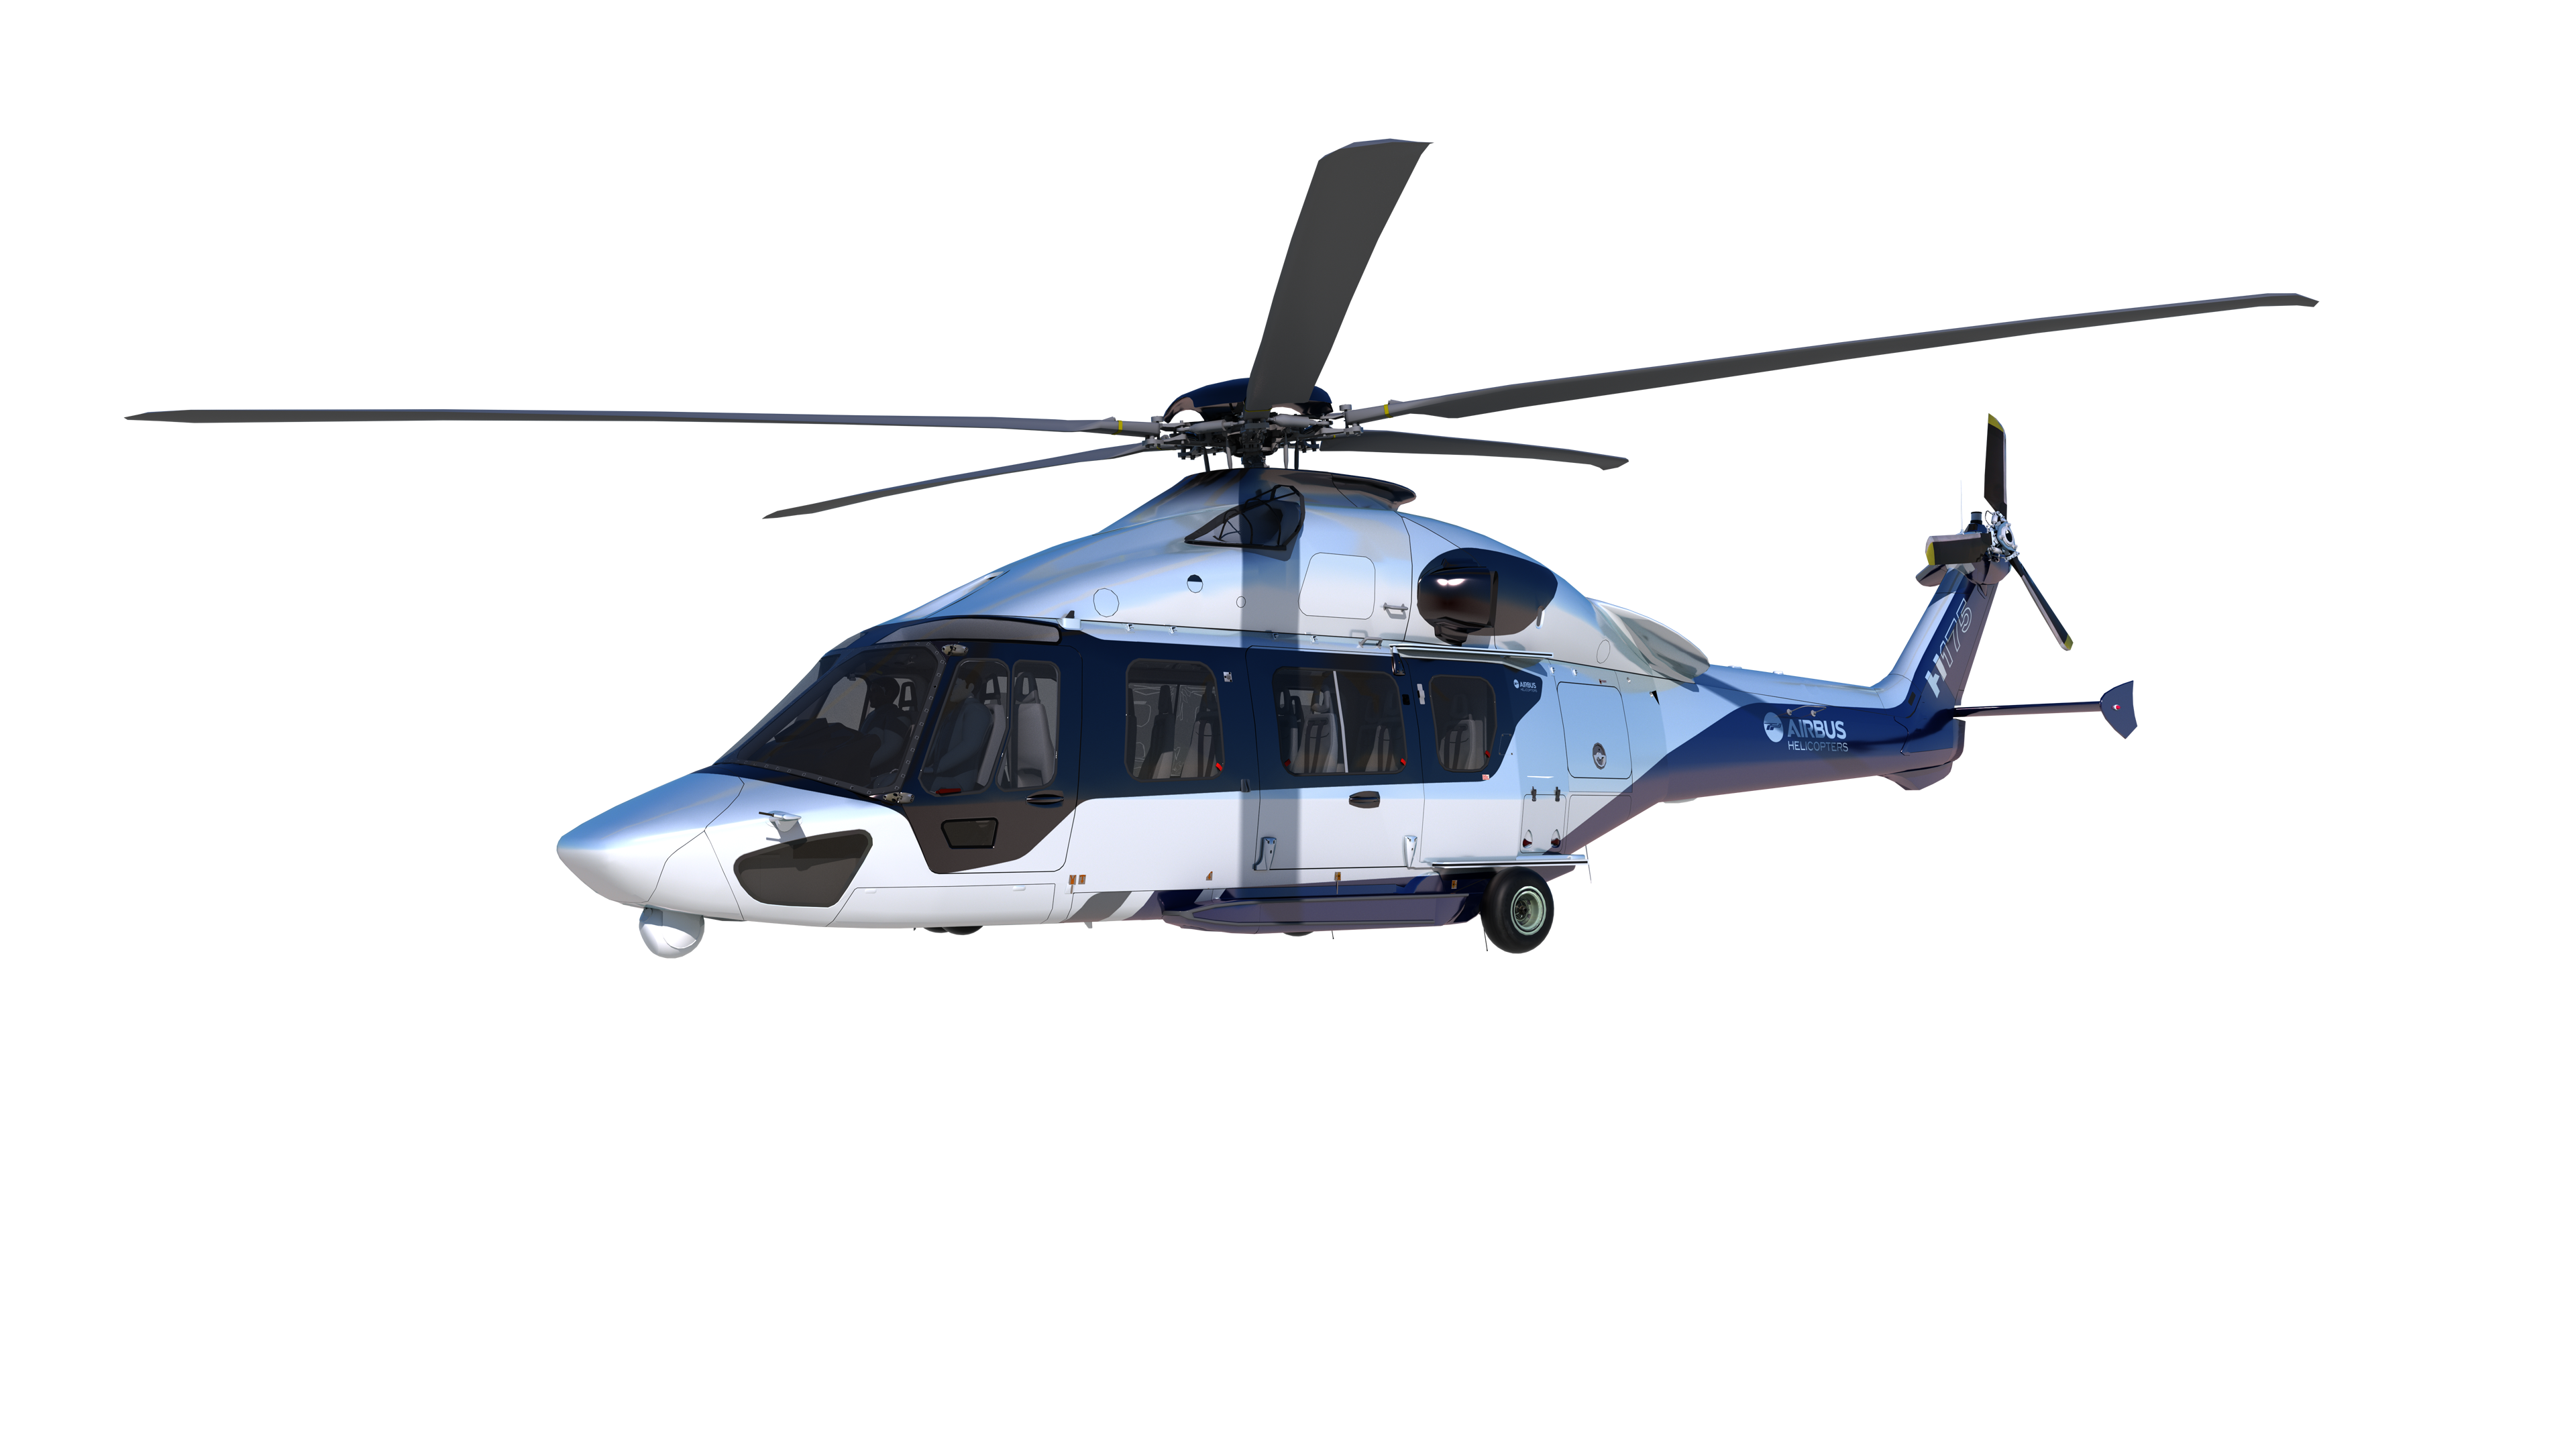 rescue helicopter toy with H160 204 on 33219 furthermore Watch moreover Clipart AceKBBpri moreover H160 204 besides Satellite Images Taken Months Apart Flooding Texas.